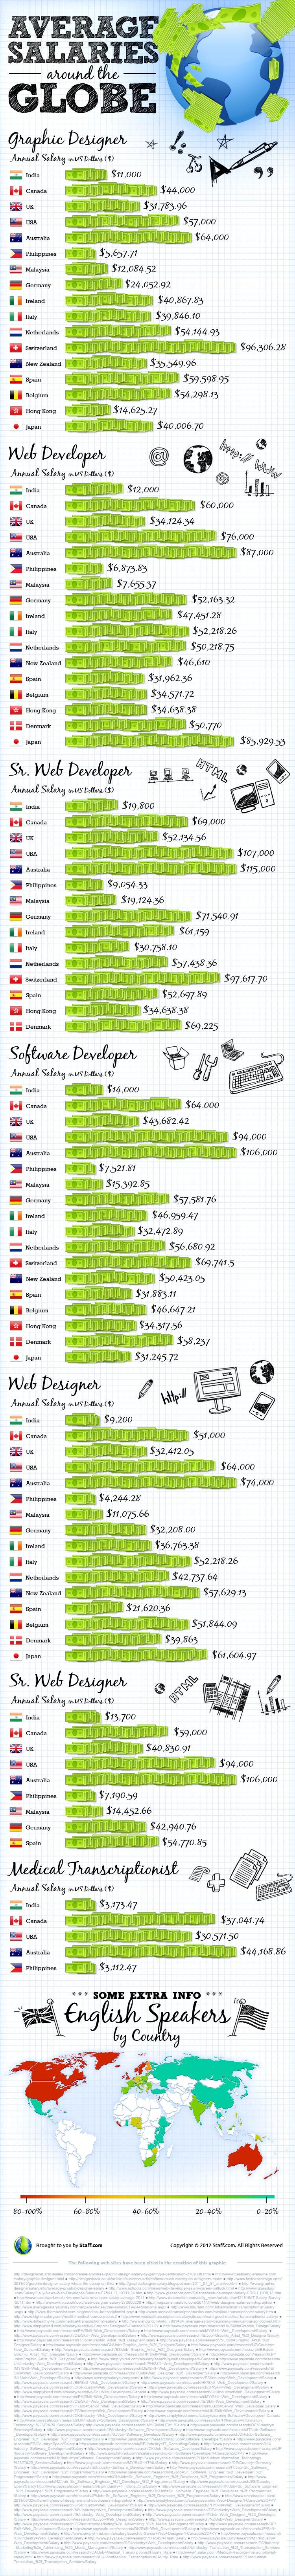 Salaries of web developers in India, the Philippines, USA and around the world | Visual.ly